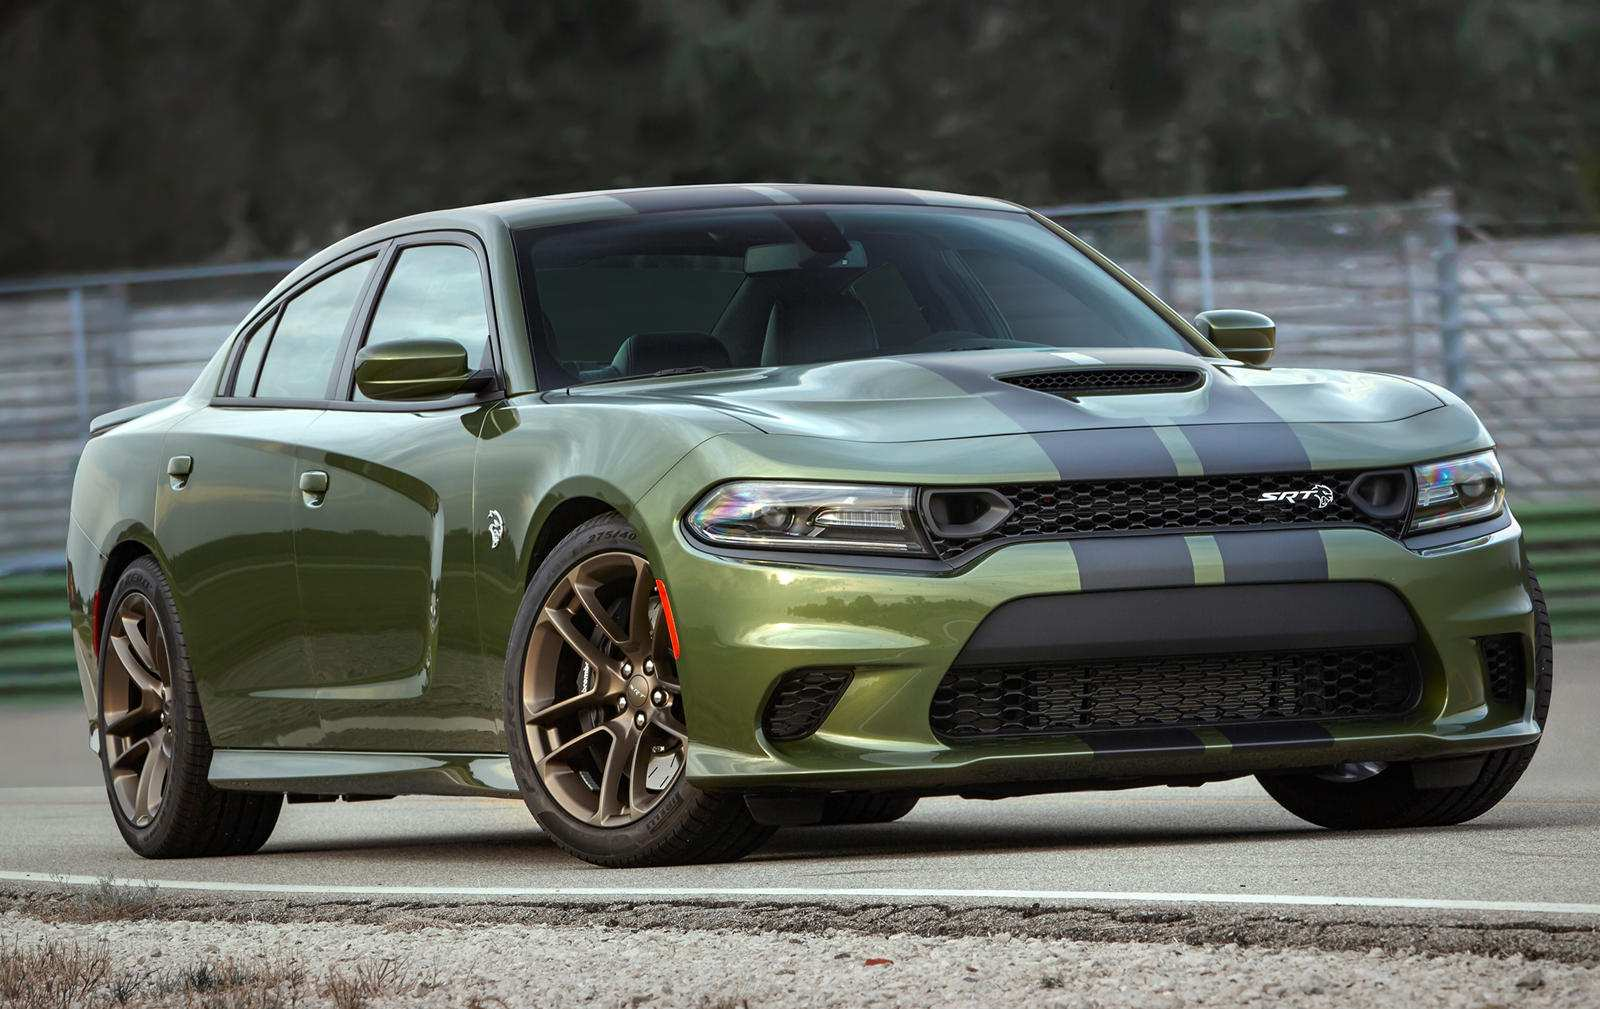 44 A 2020 Dodge Charger Hellcat First Drive